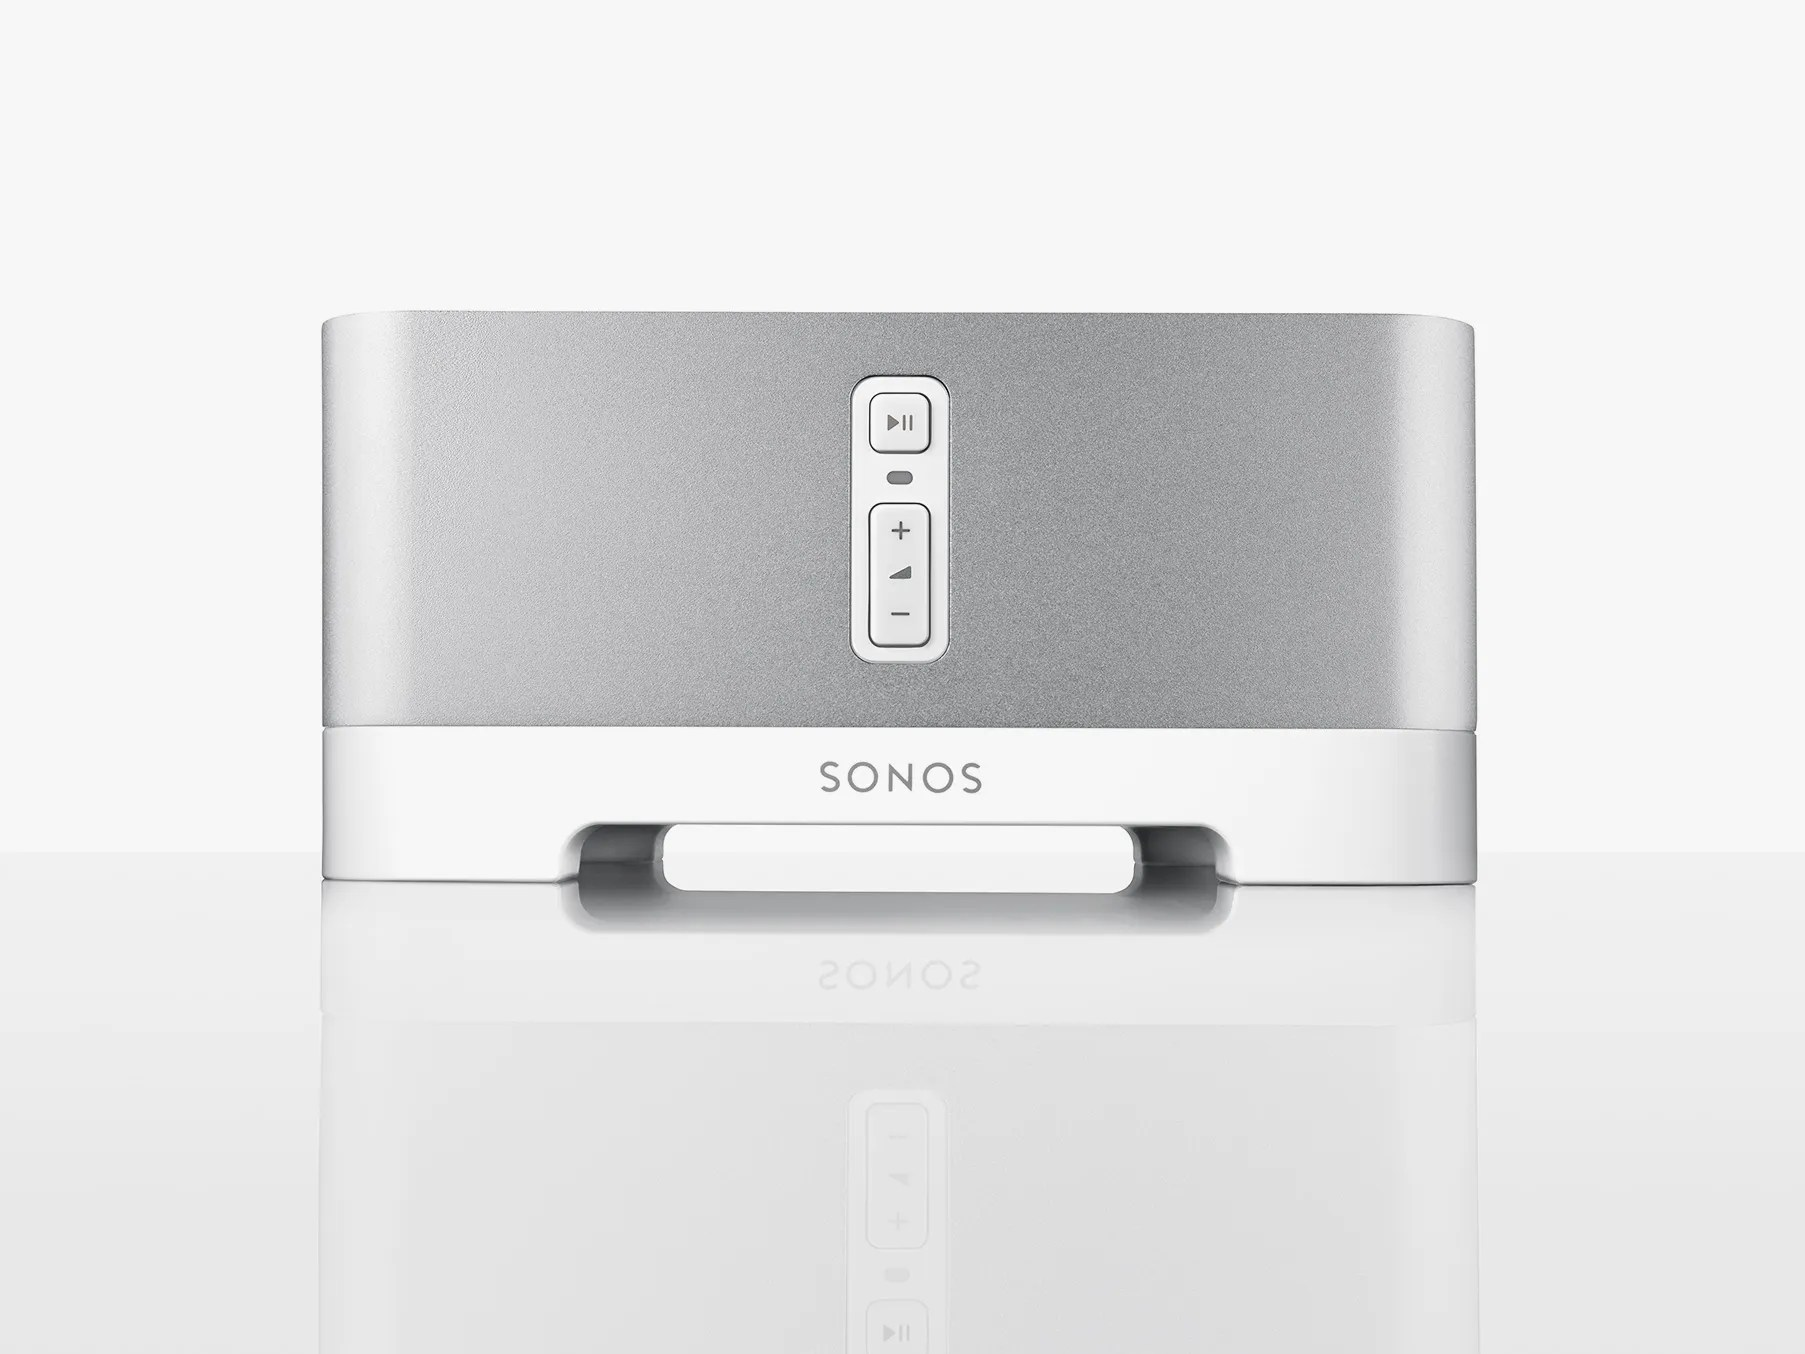 Sonos Connect Amp Preis Sonos Amp New For 2019 Price Specs Release Date Wired